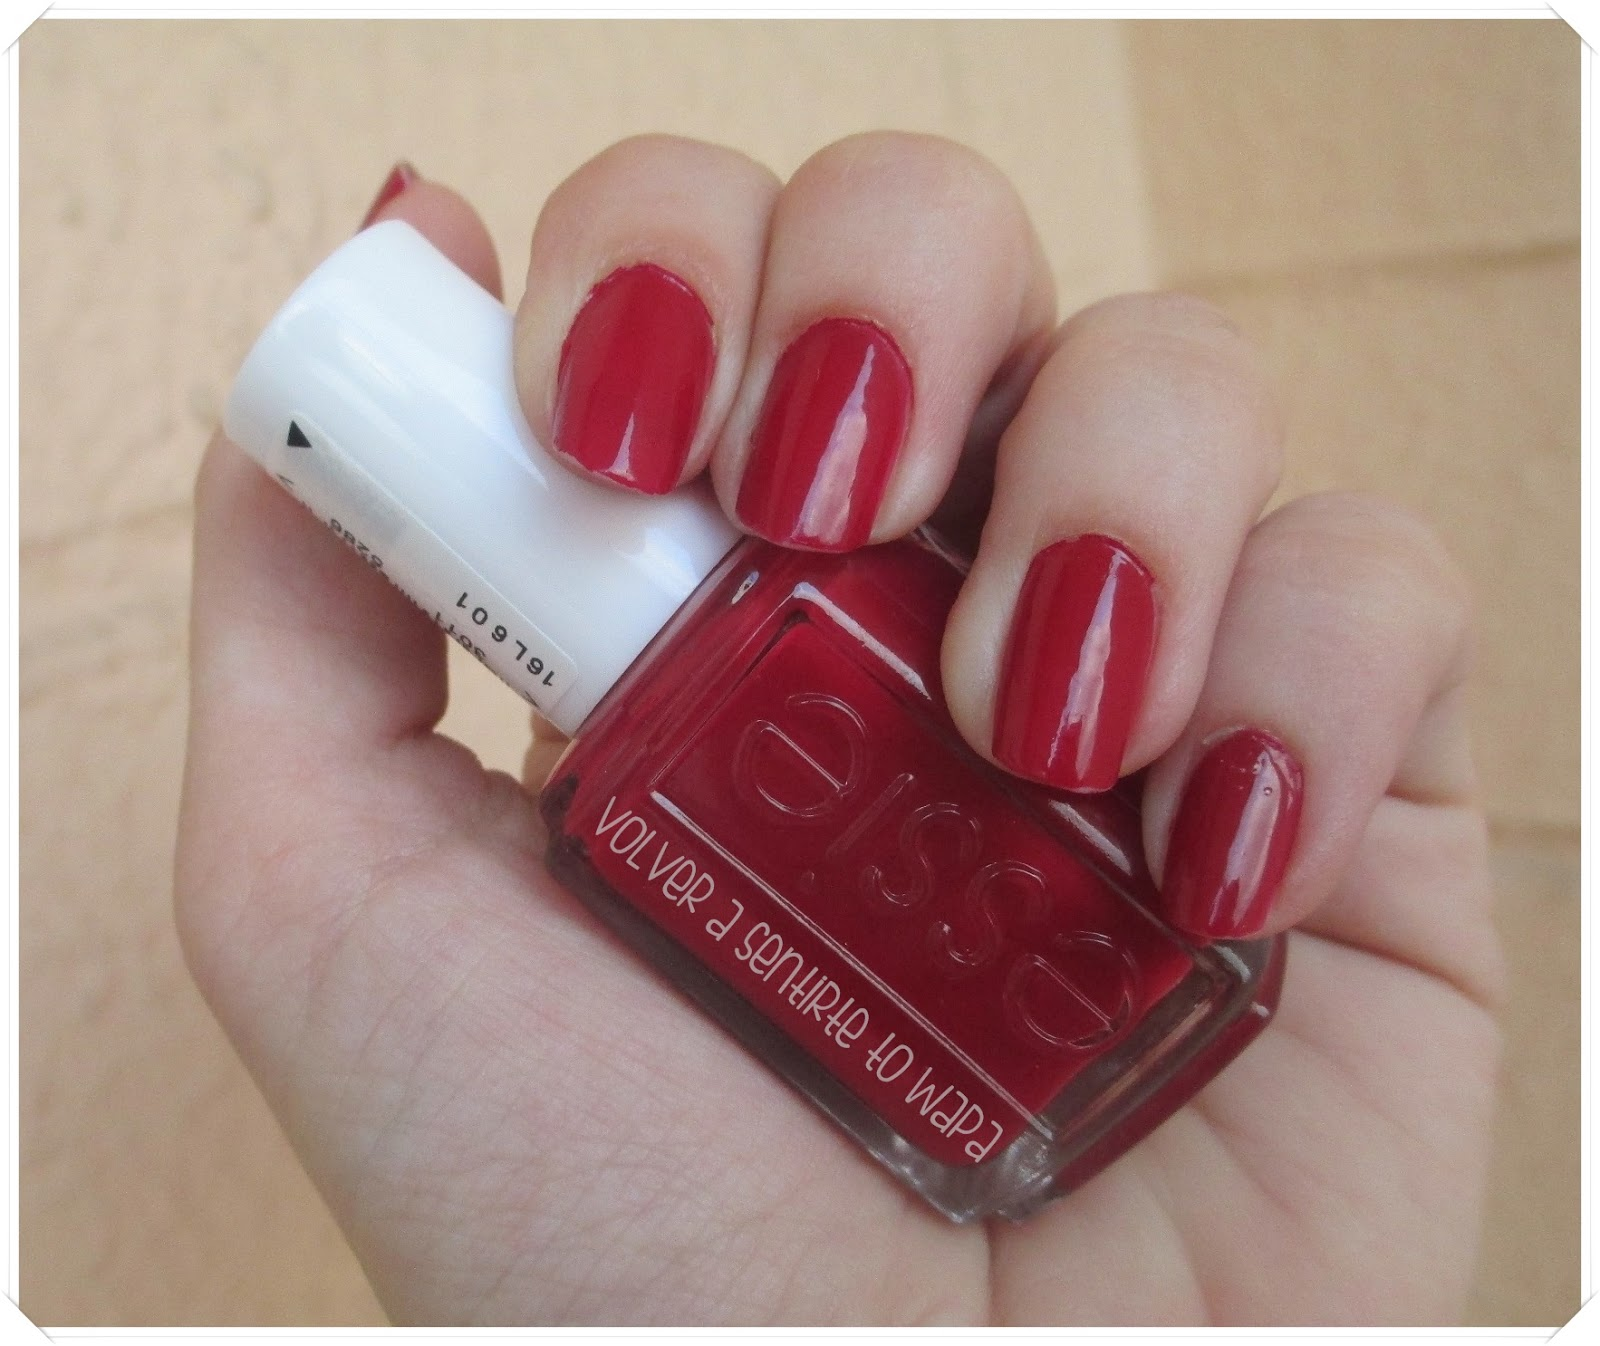 Esmalte de Essie - Tono dress to kilt